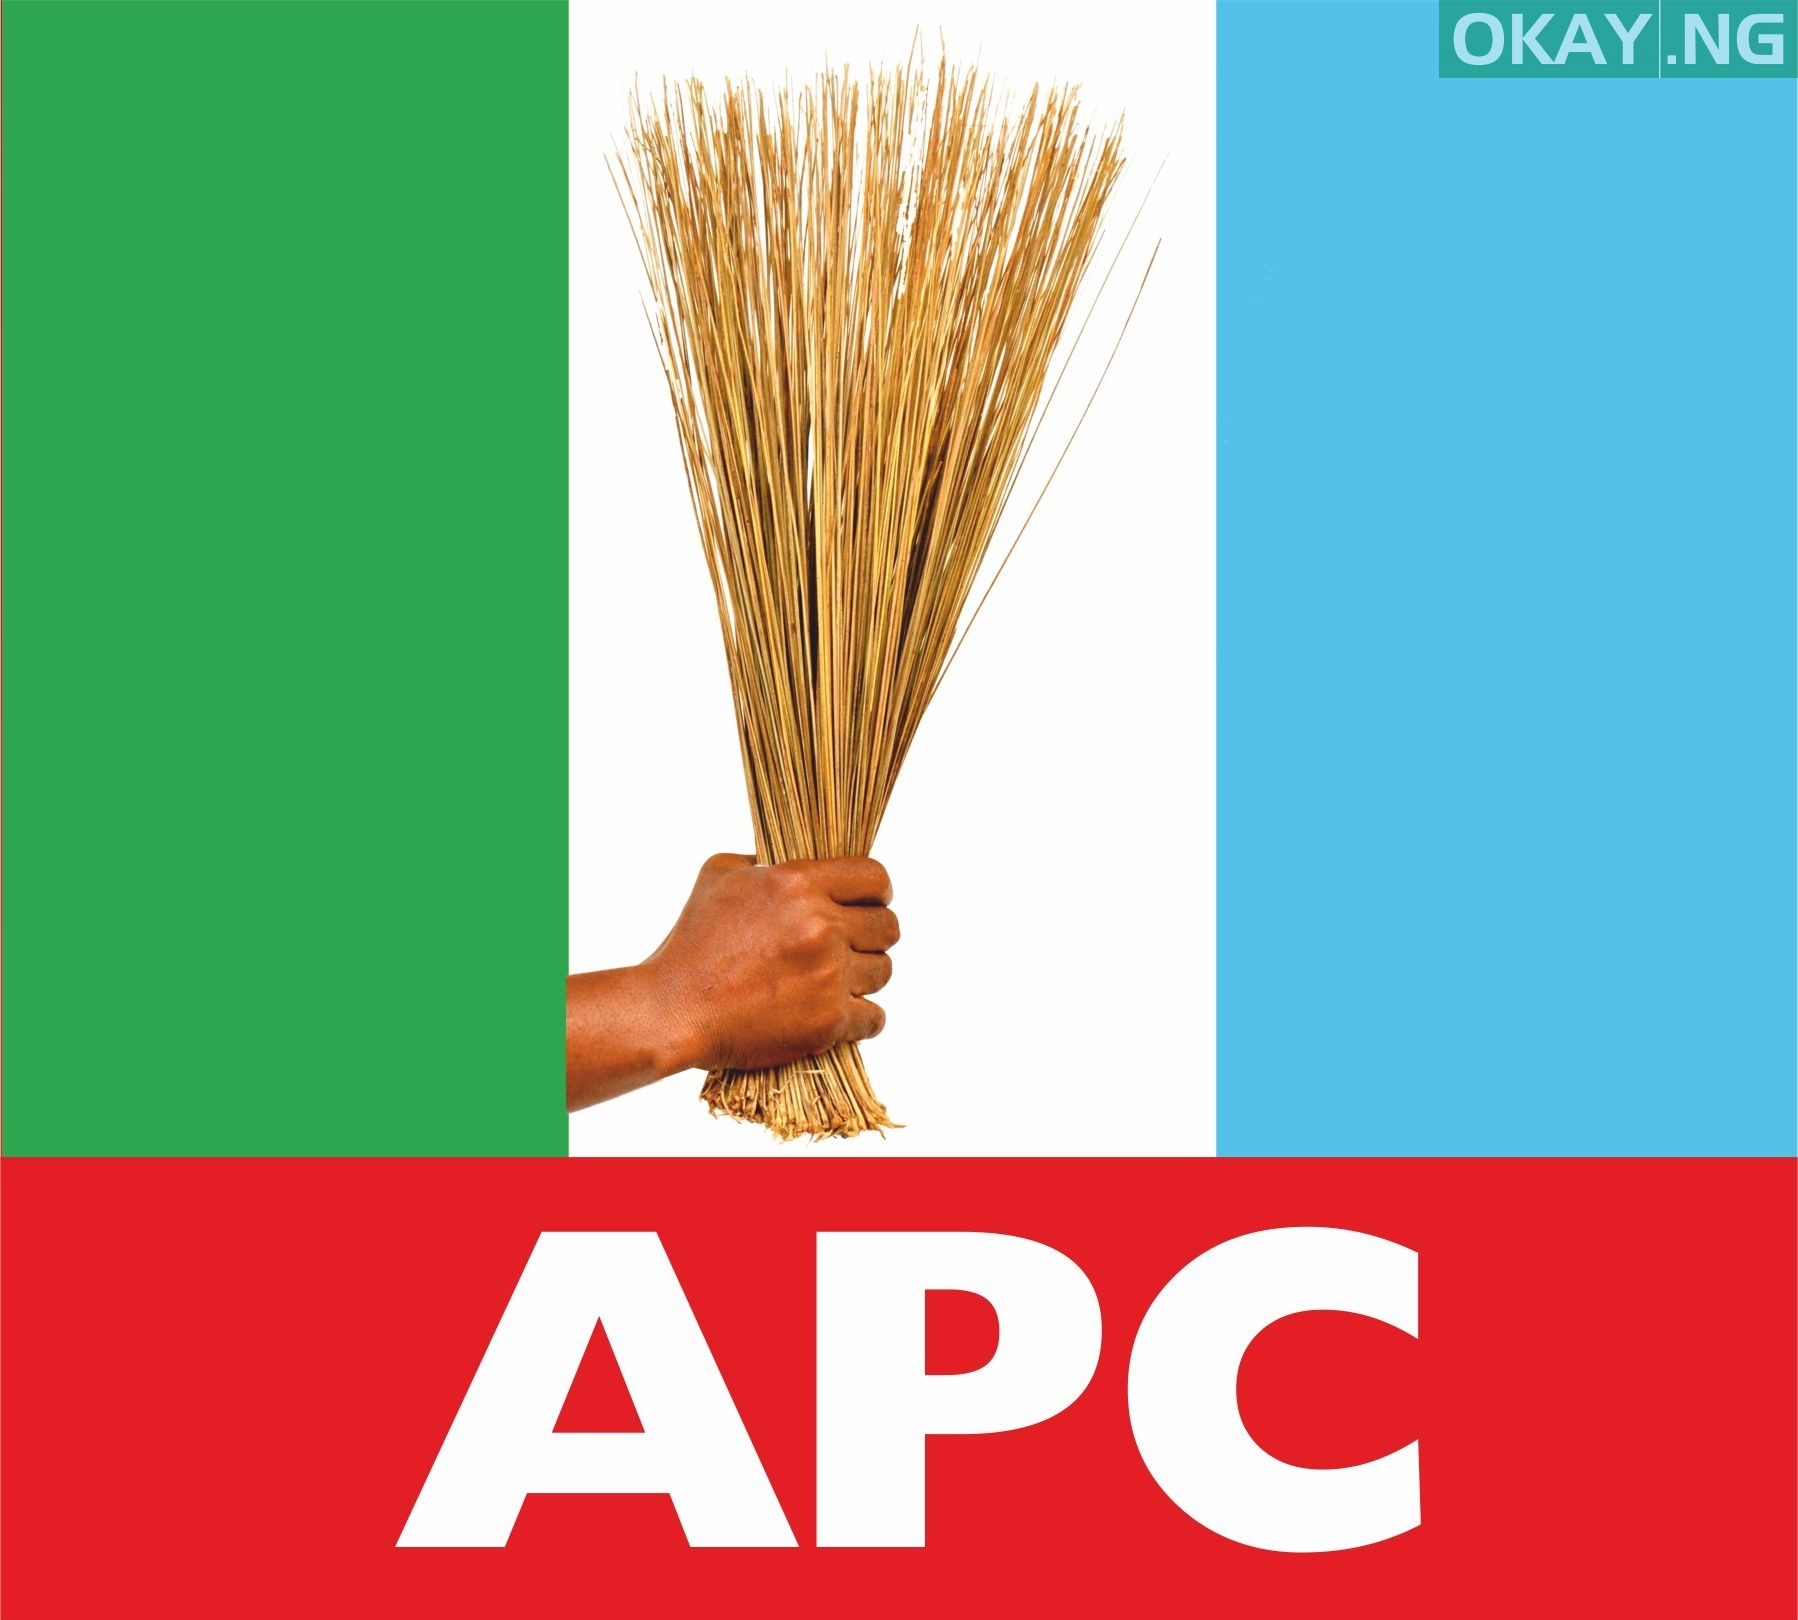 APC LOGO OKAYNG - APC Postpones National Caucus, NEC Meetings Earlier Scheduled For Monday,Tuesday